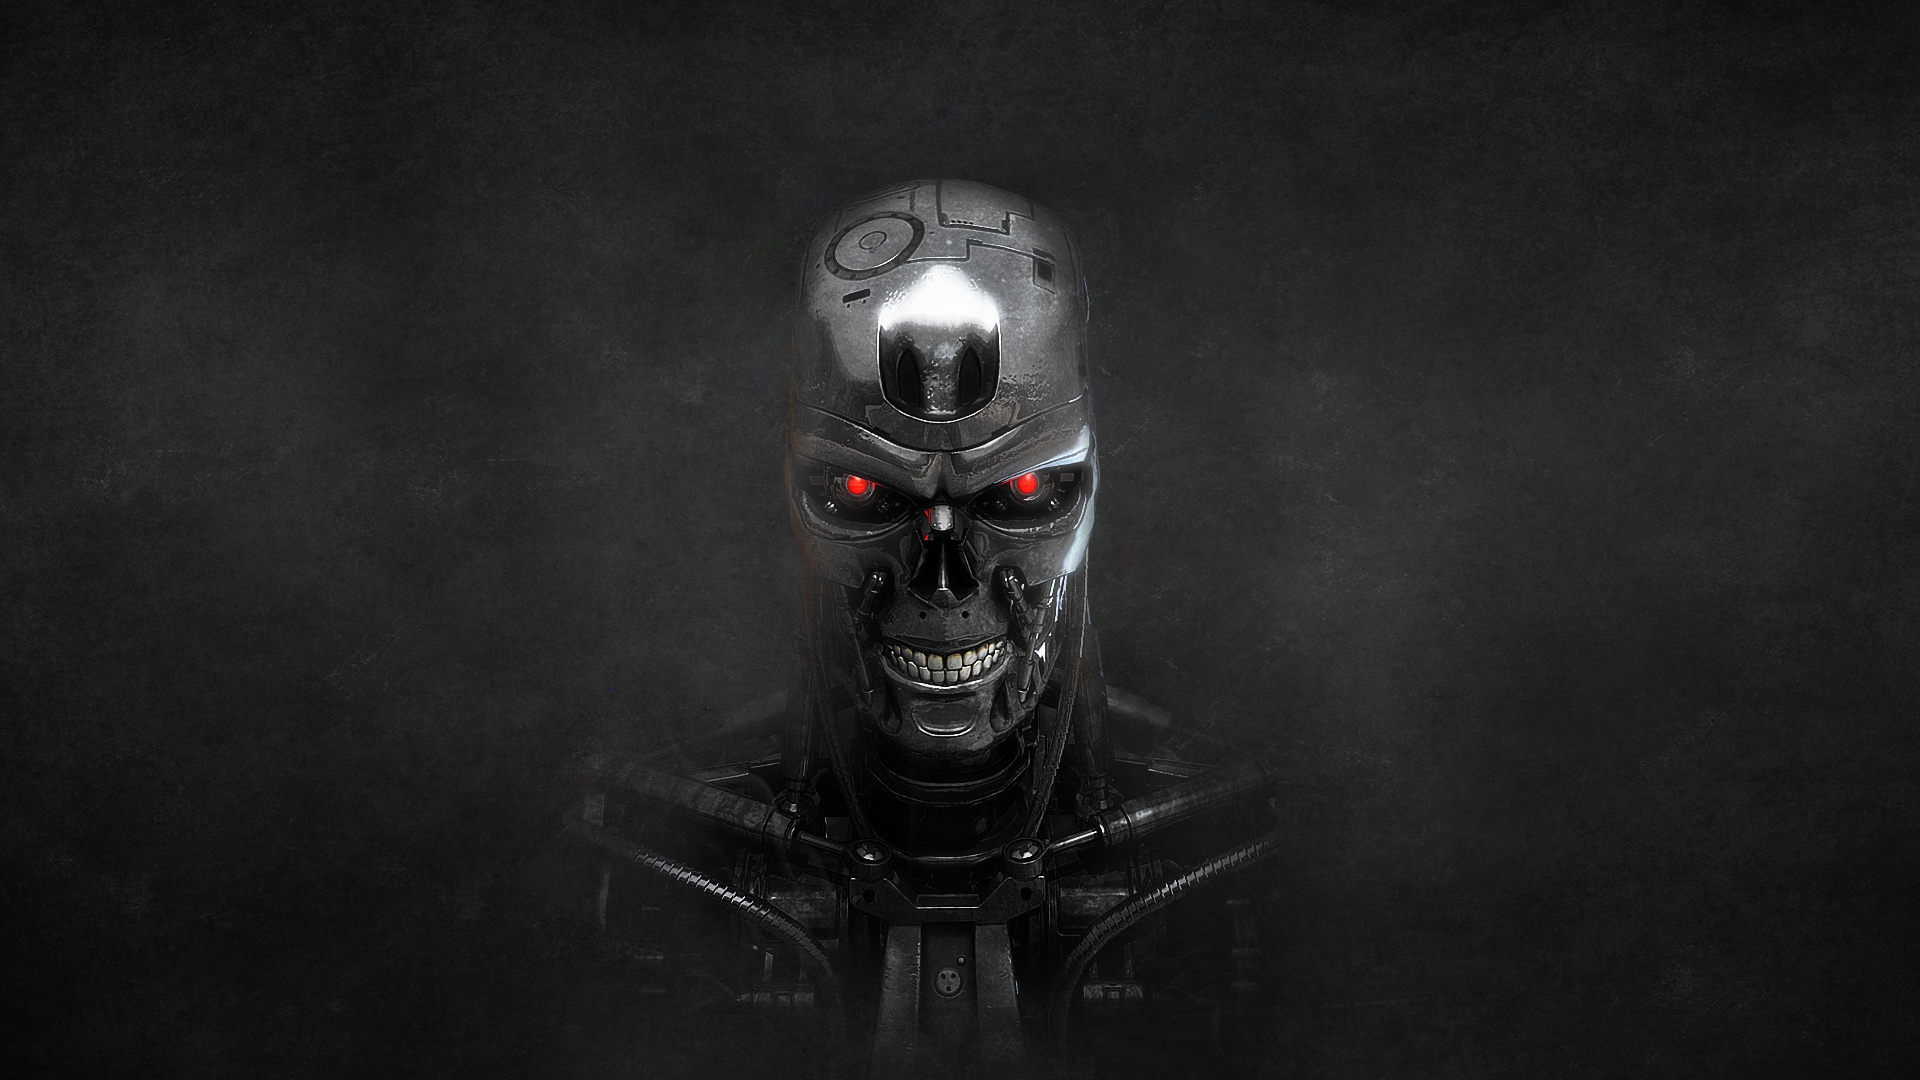 Patterns For Girls Wallpaper High Defintion Download Wallpaper 1920x1080 Terminator Skeleton Metal